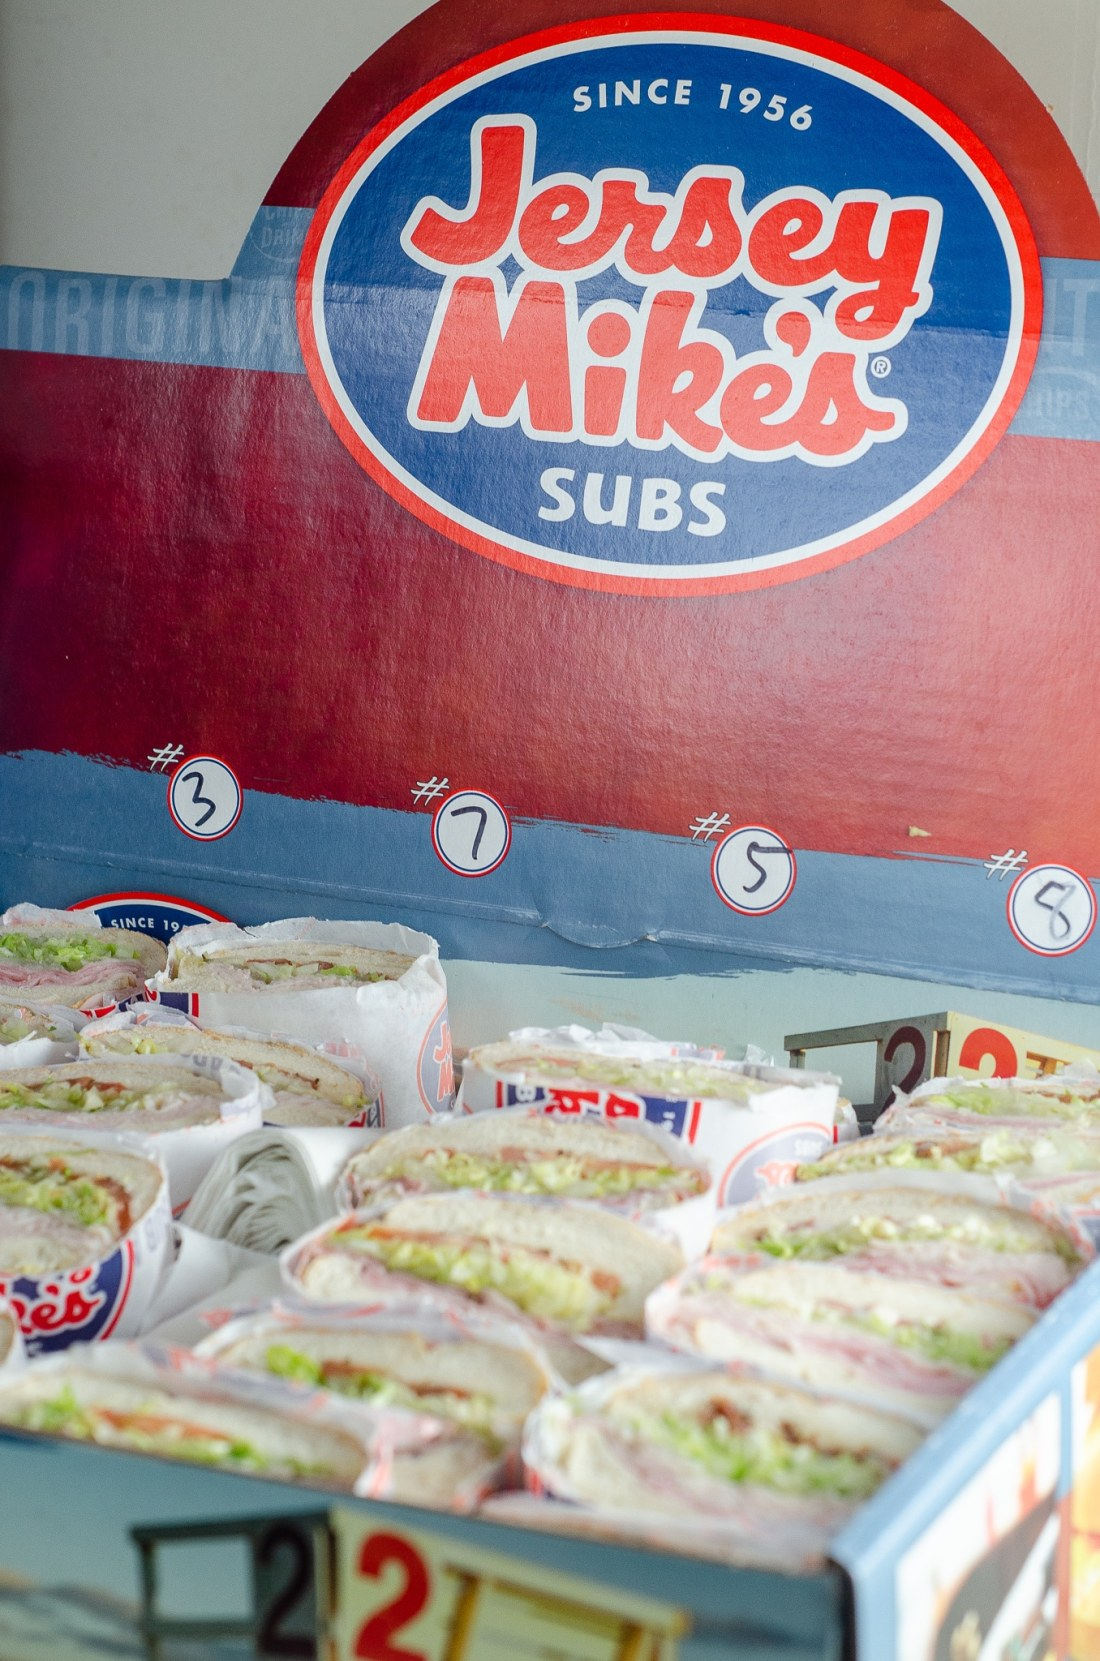 Jersey Mikes Subs Catering Box. Stop stressing about what everyone will be eating on the Big Game Day. Take advantage of some awesome No-Cook Easy Game Day Snack Idea's on the blog now.